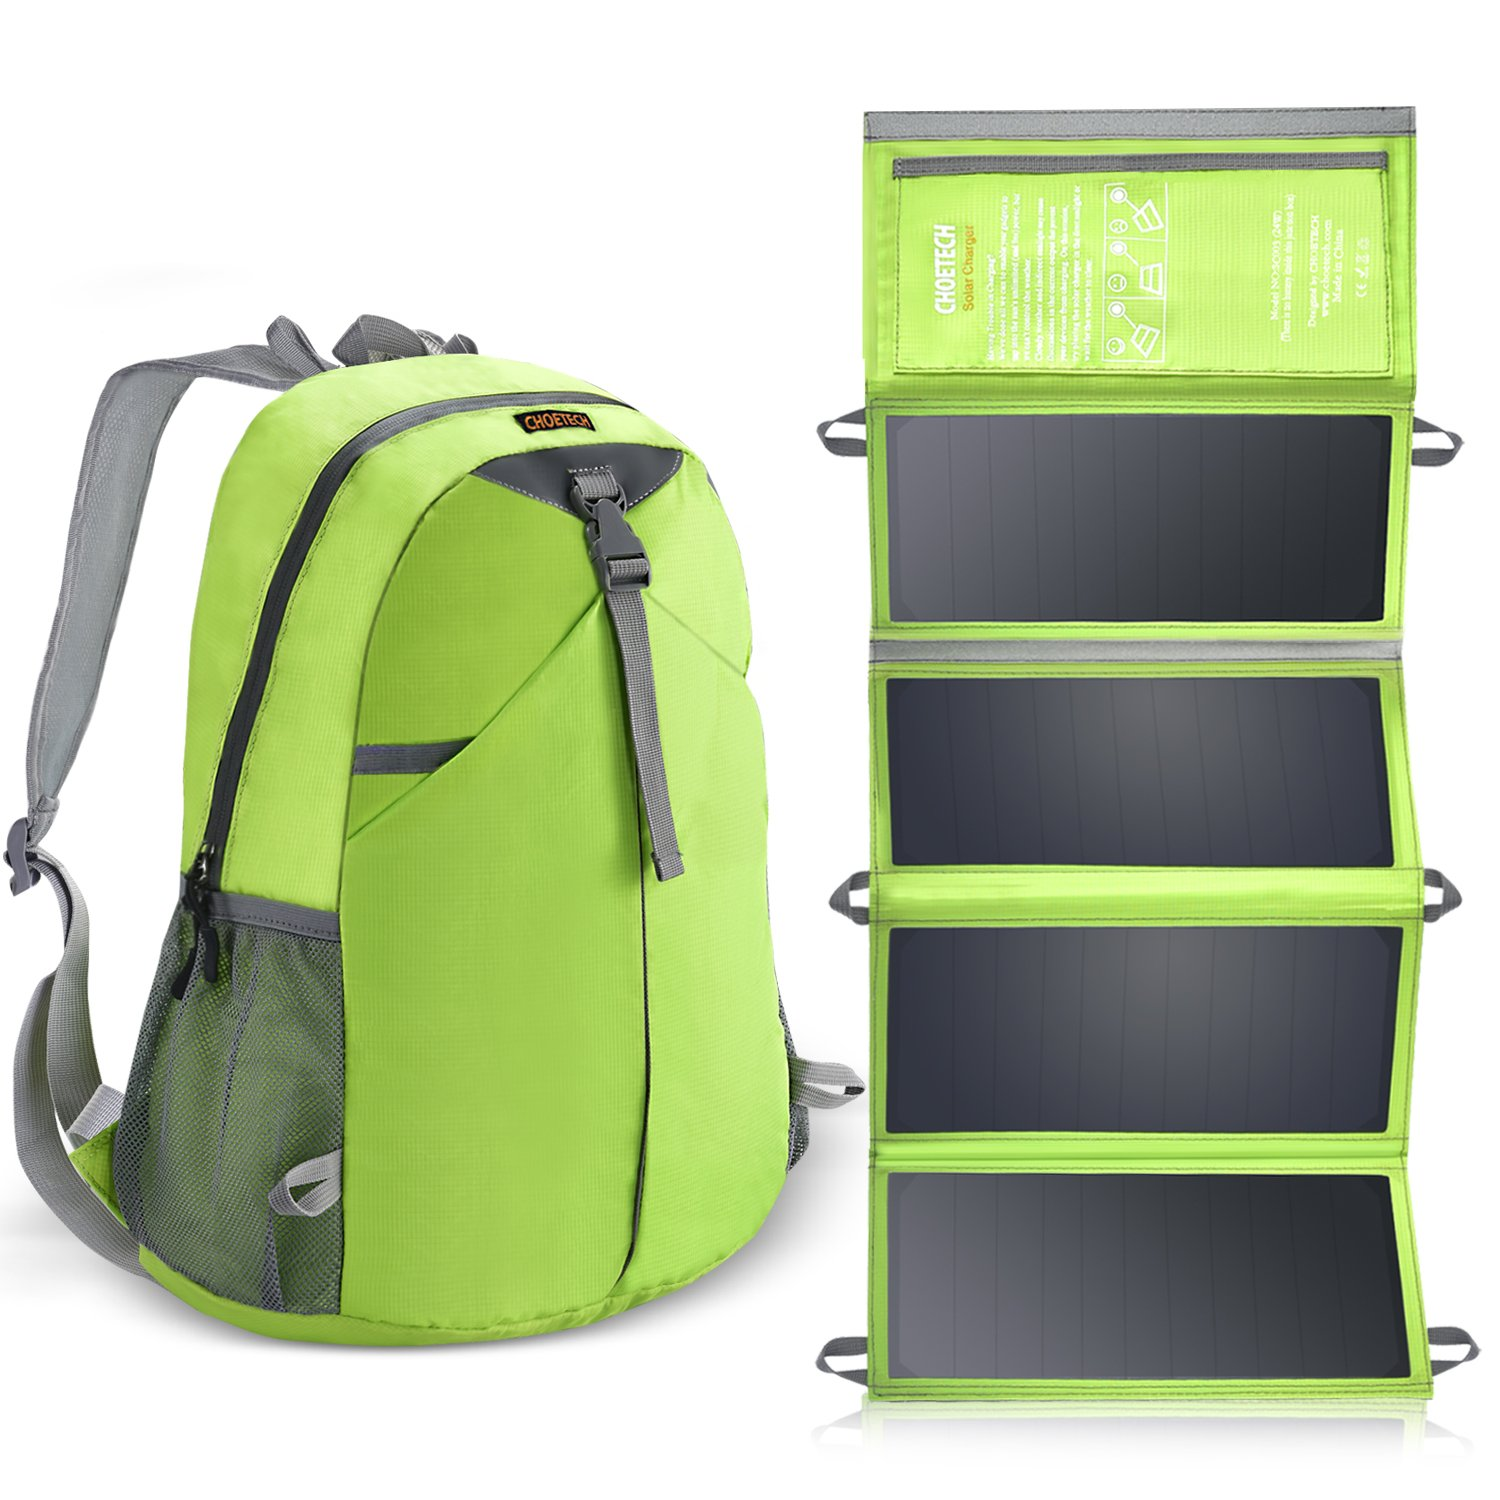 CHOETECH 24W Solar Charger Backpack Kit for iPhone, iPad, Samsung and Other USB Compatible Devices by CHOETECH